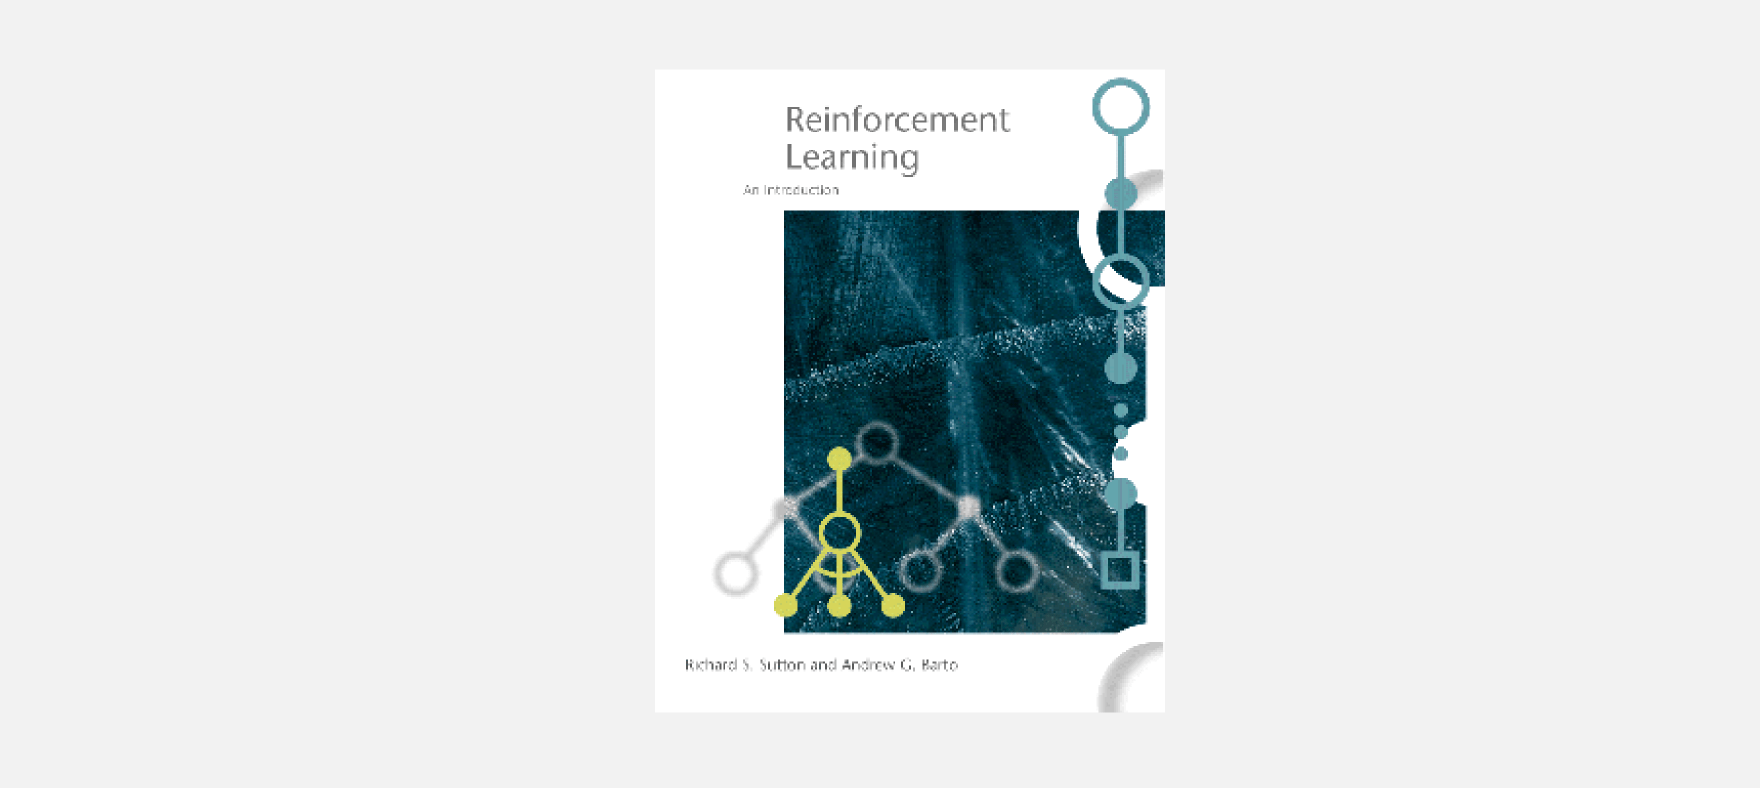 Renforce Learning Dissecting Reinforcement Learning Part 4